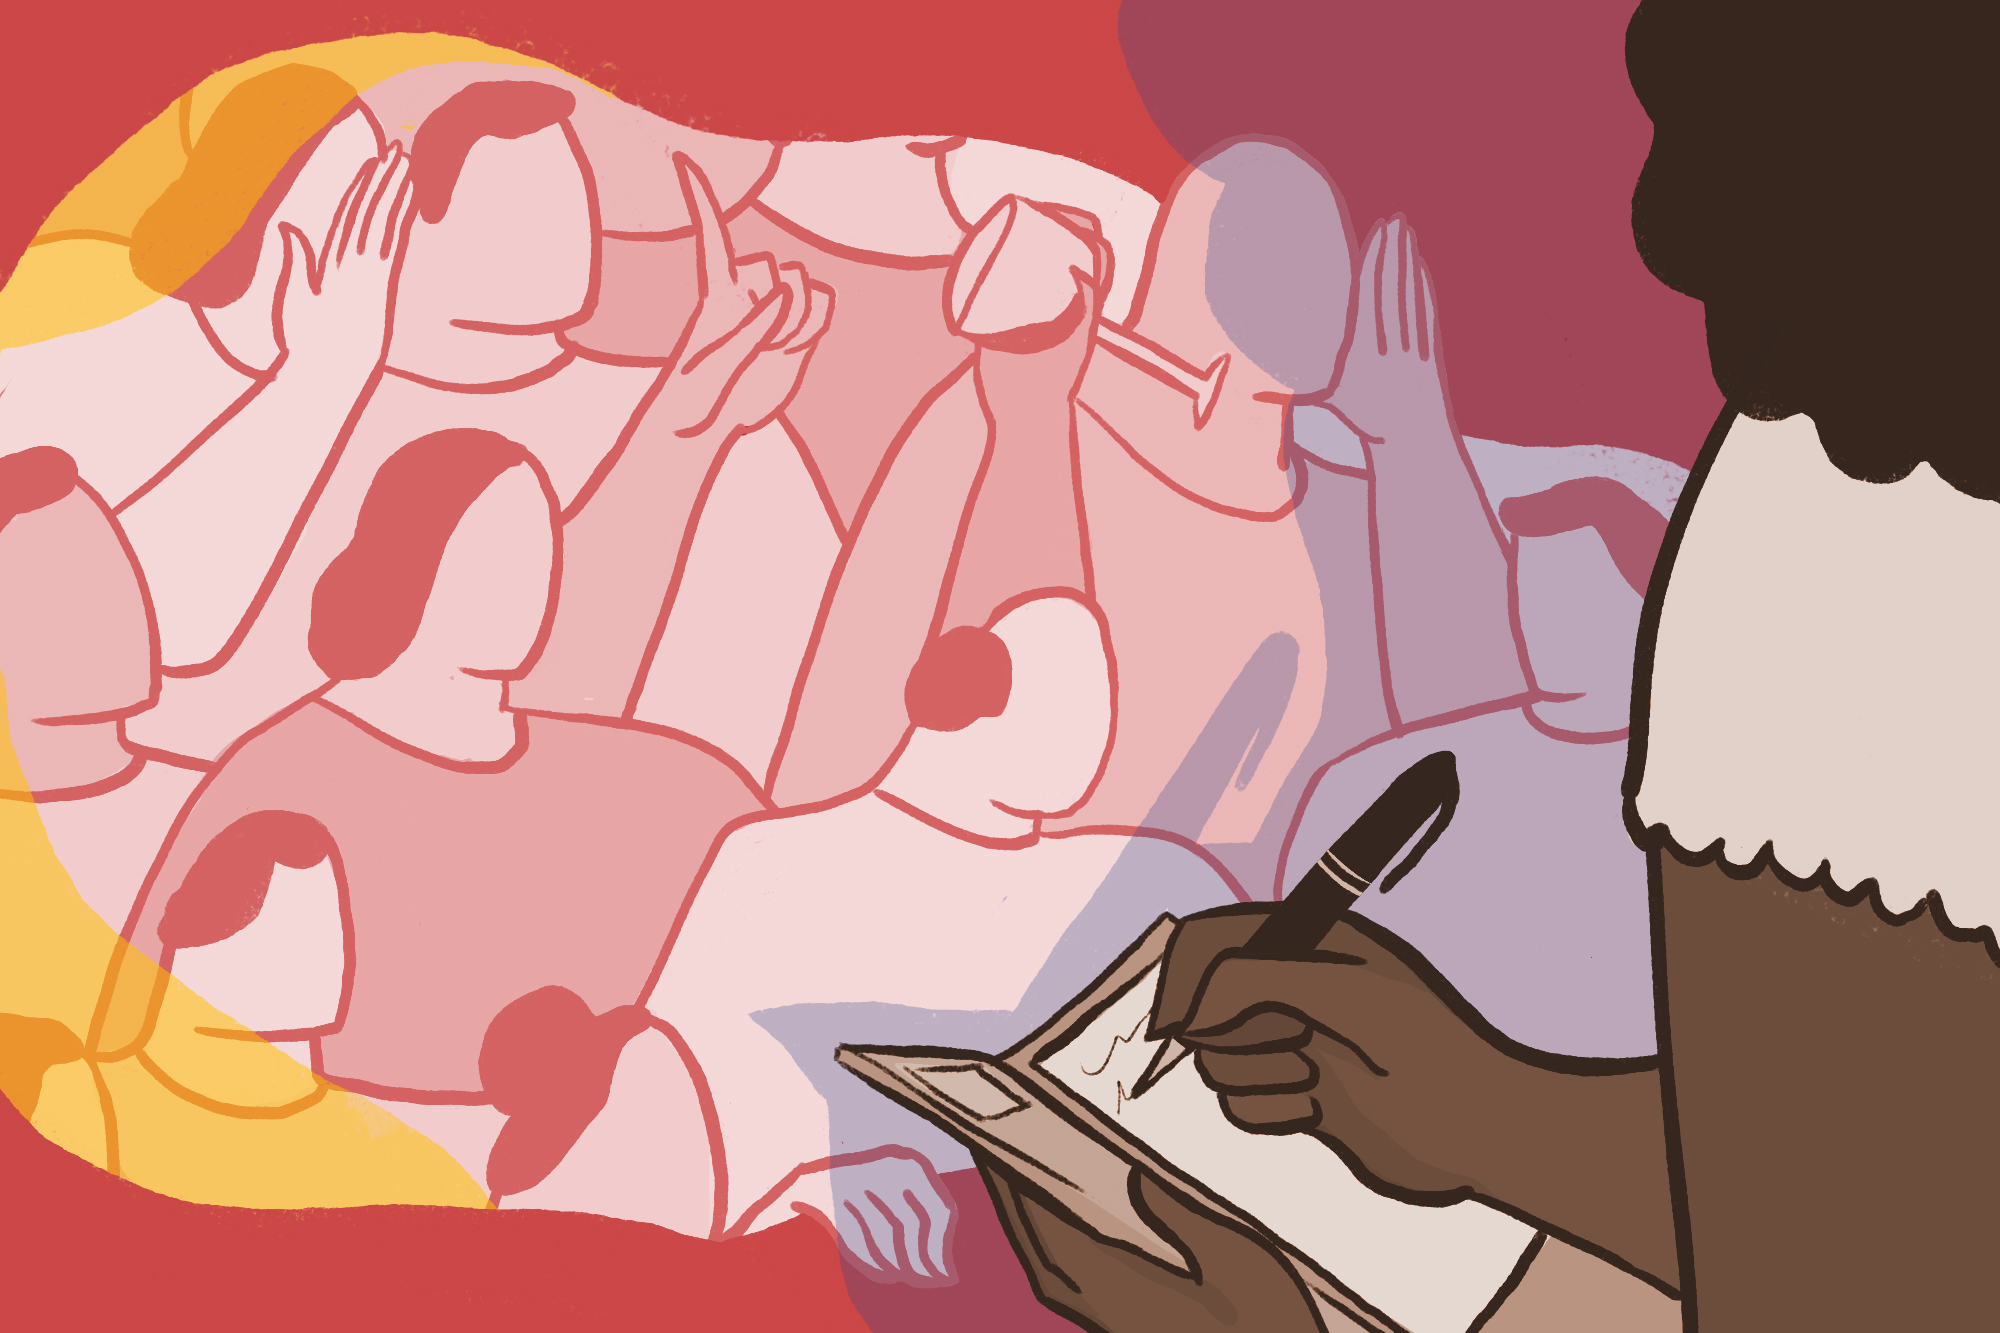 An illustration showing a Black female restaurant server taking an order, surrounded by a sea of white people trying to get her attention.